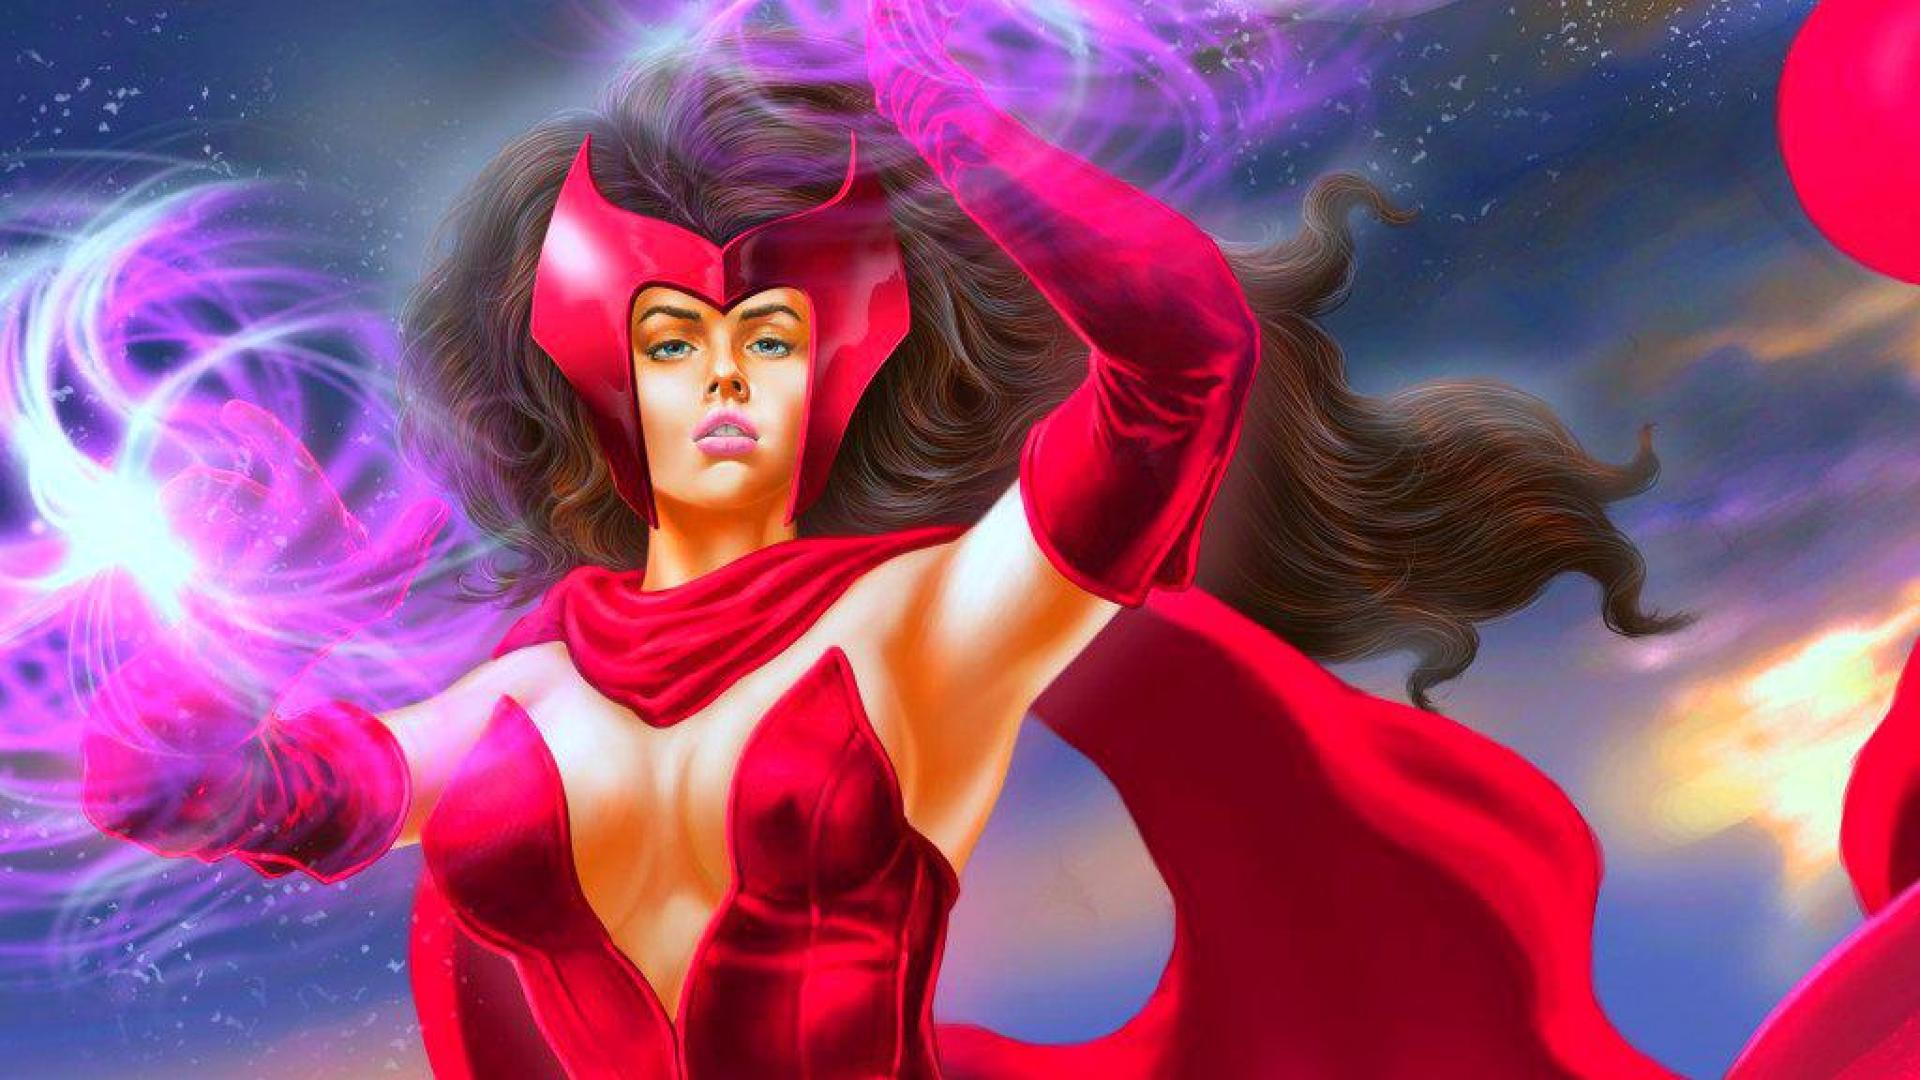 Scarlet witch   159933   High Quality and Resolution Wallpapers on 1920x1080